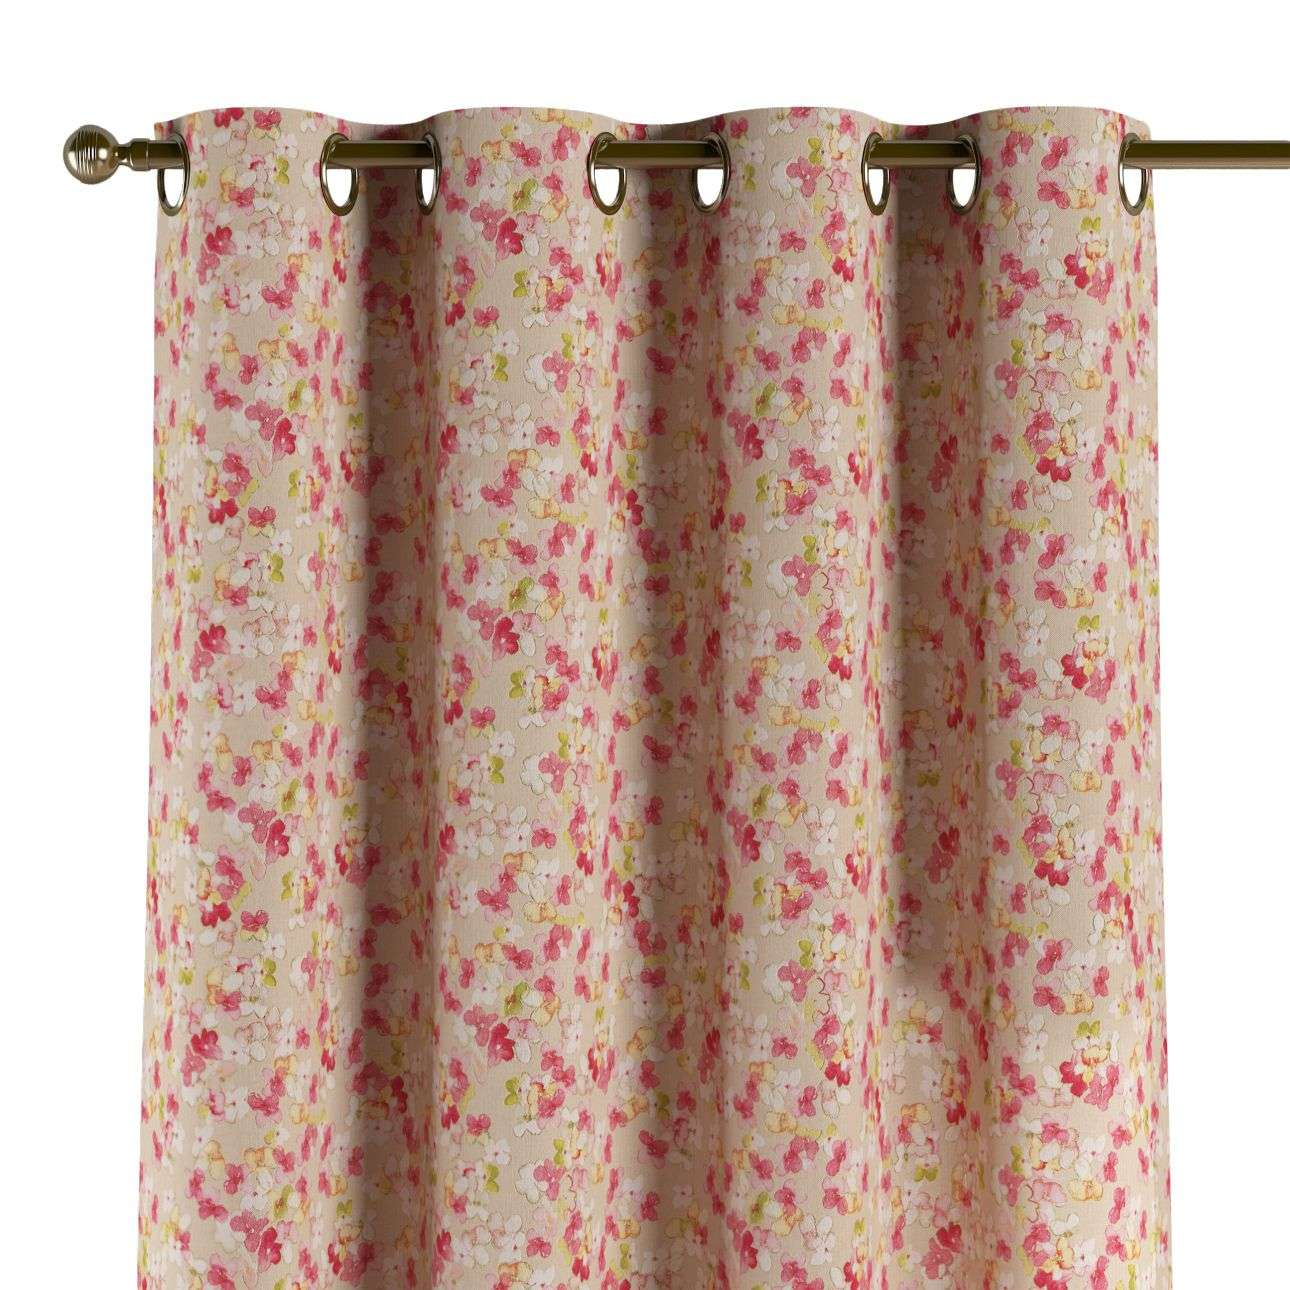 Eyelet curtains 130 x 260 cm (51 x 102 inch) in collection Londres, fabric: 140-47